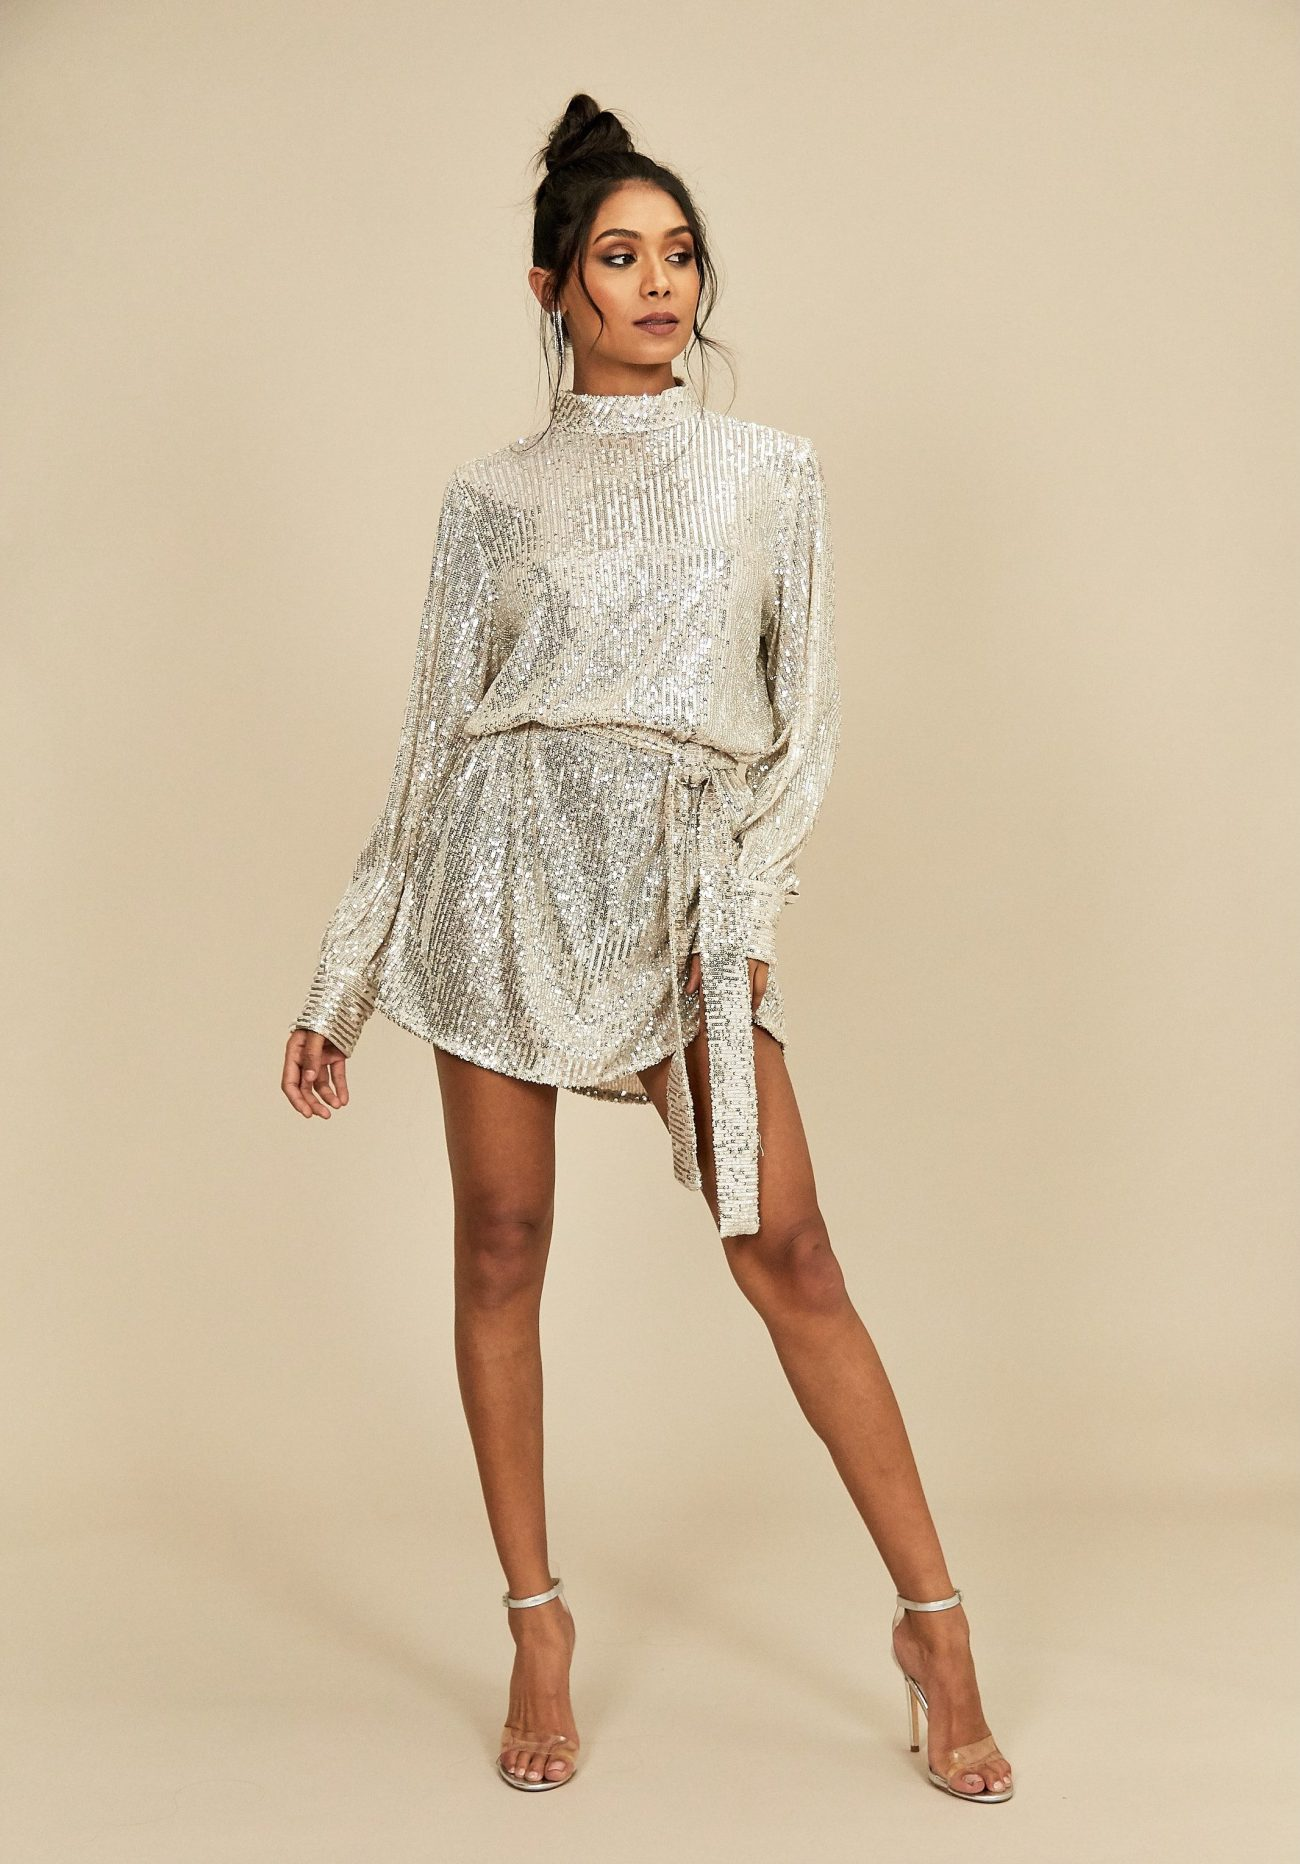 Model wears silver sequin mini dress with high neck and tie waist